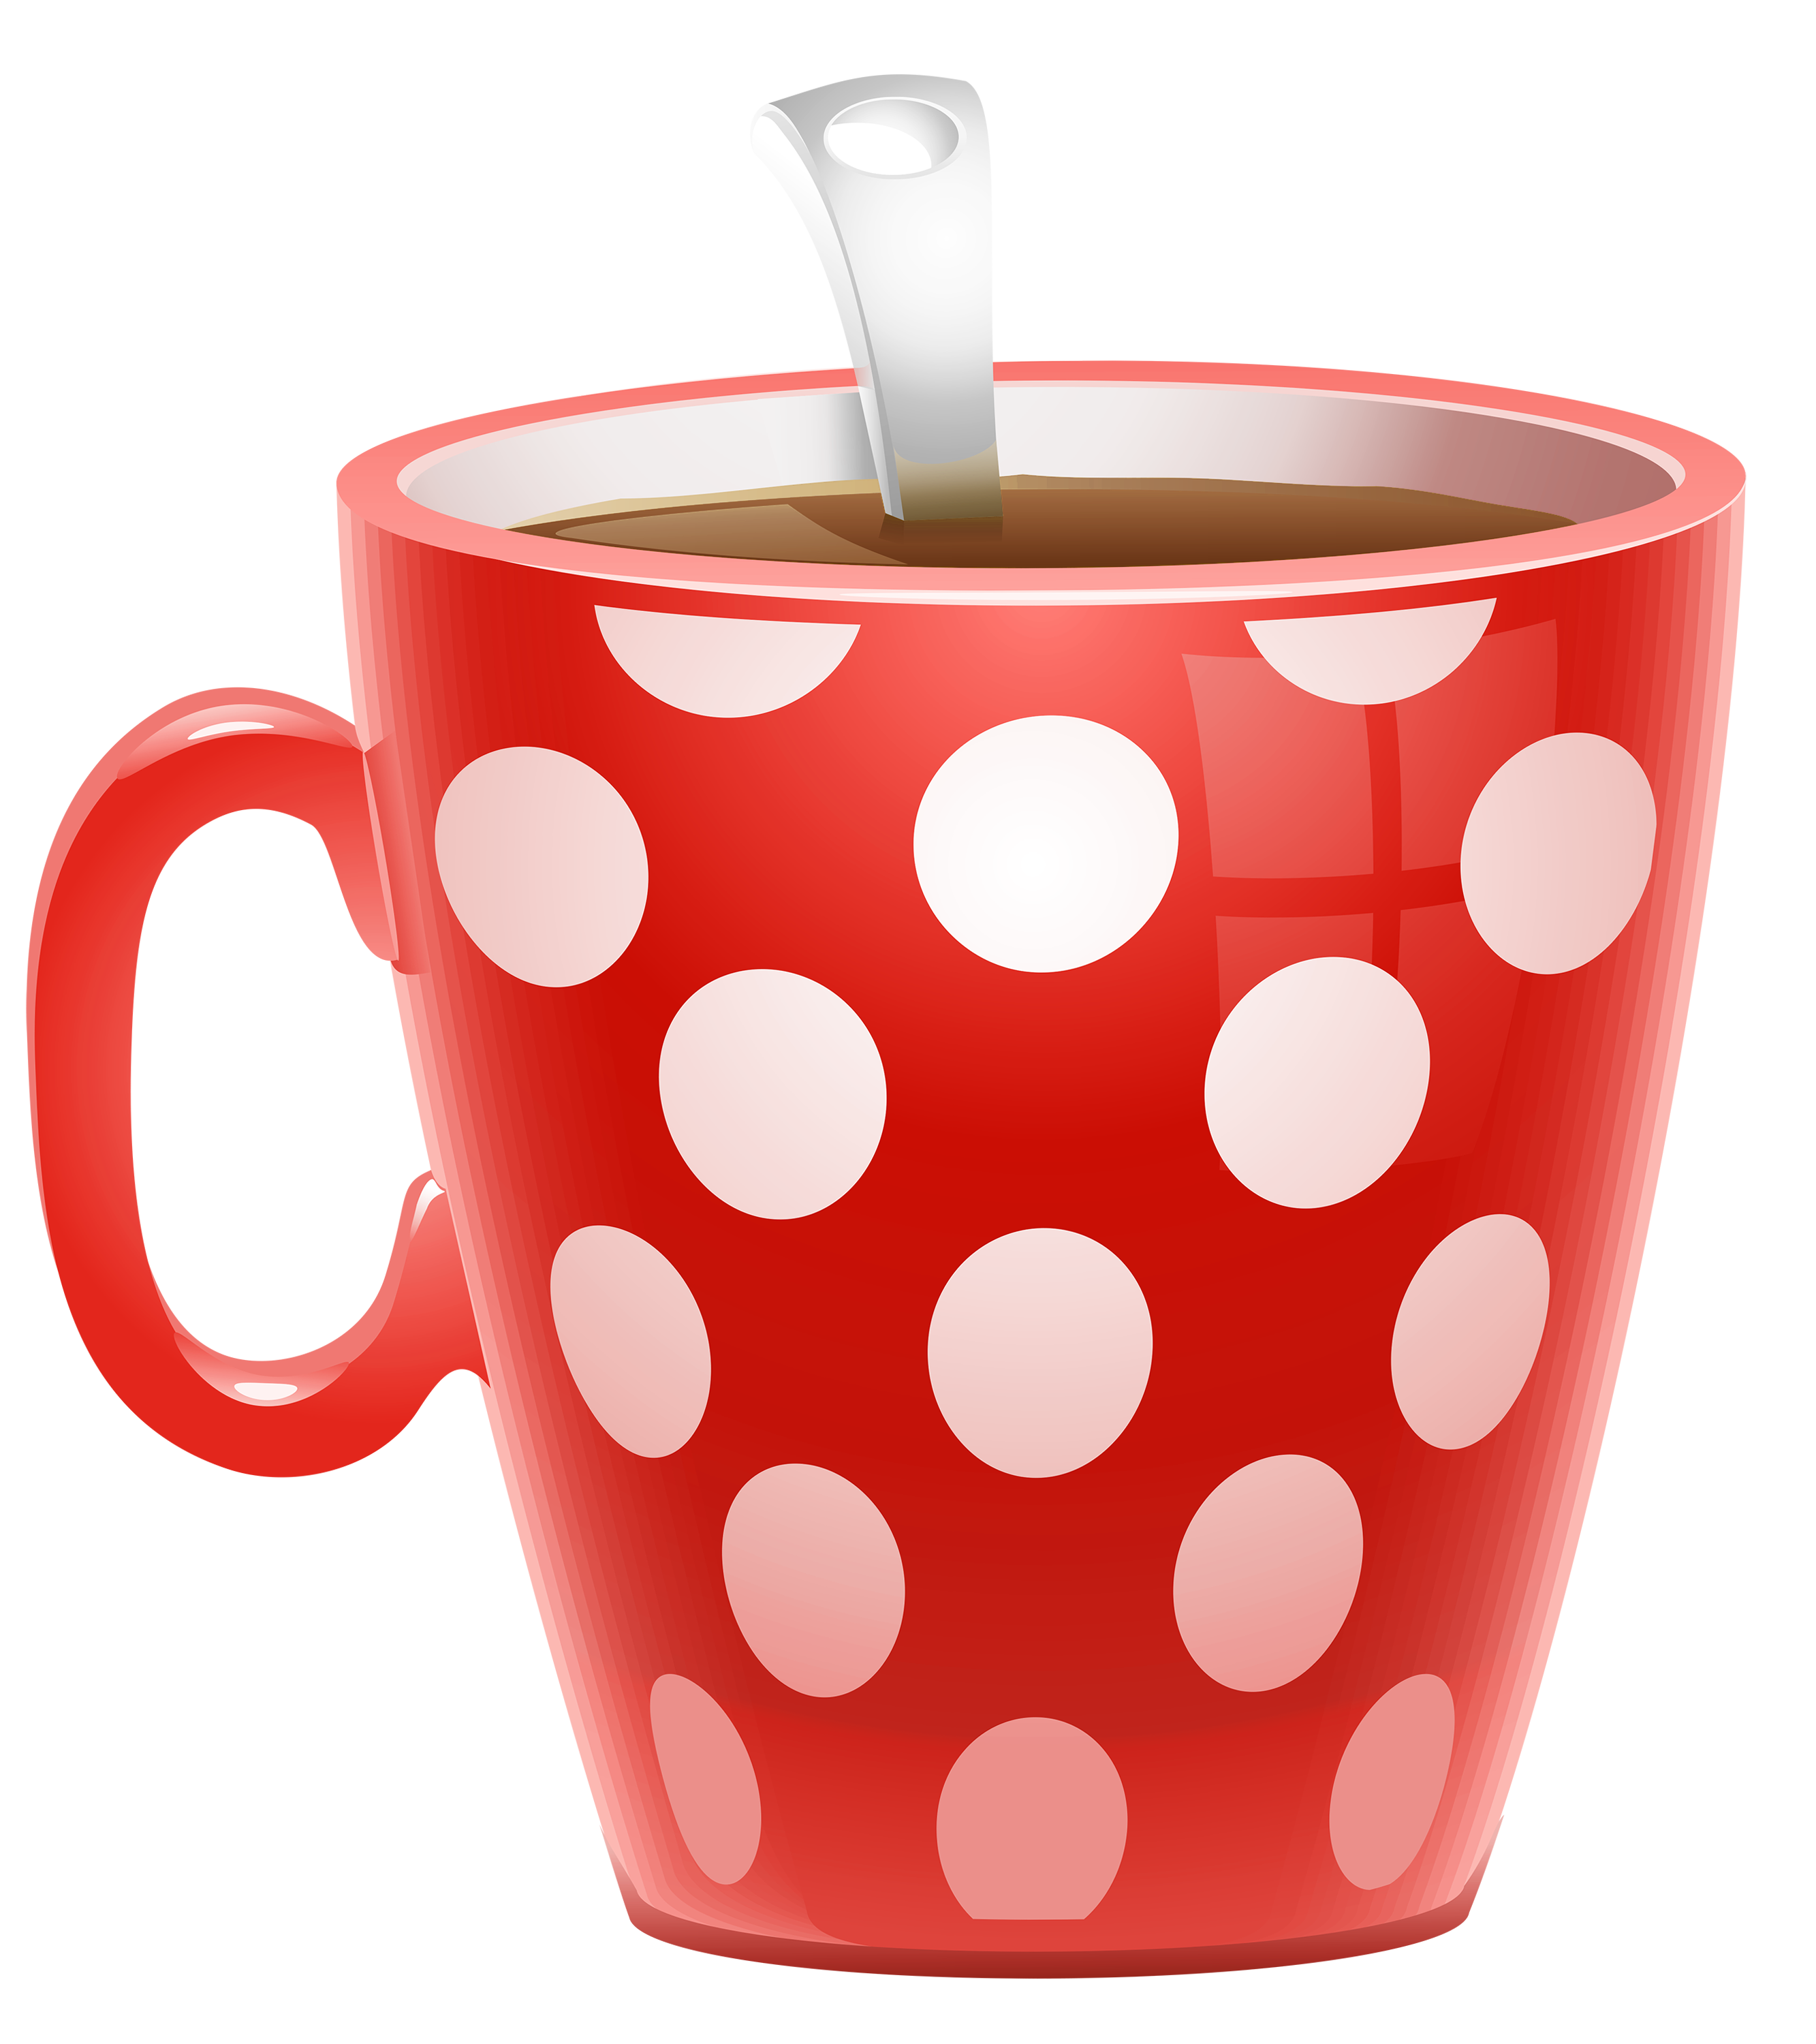 Red Dotted Coffee Cup Png Clipart Picture Coffee Cup Art Coffee Clipart Coffee Cup Clipart